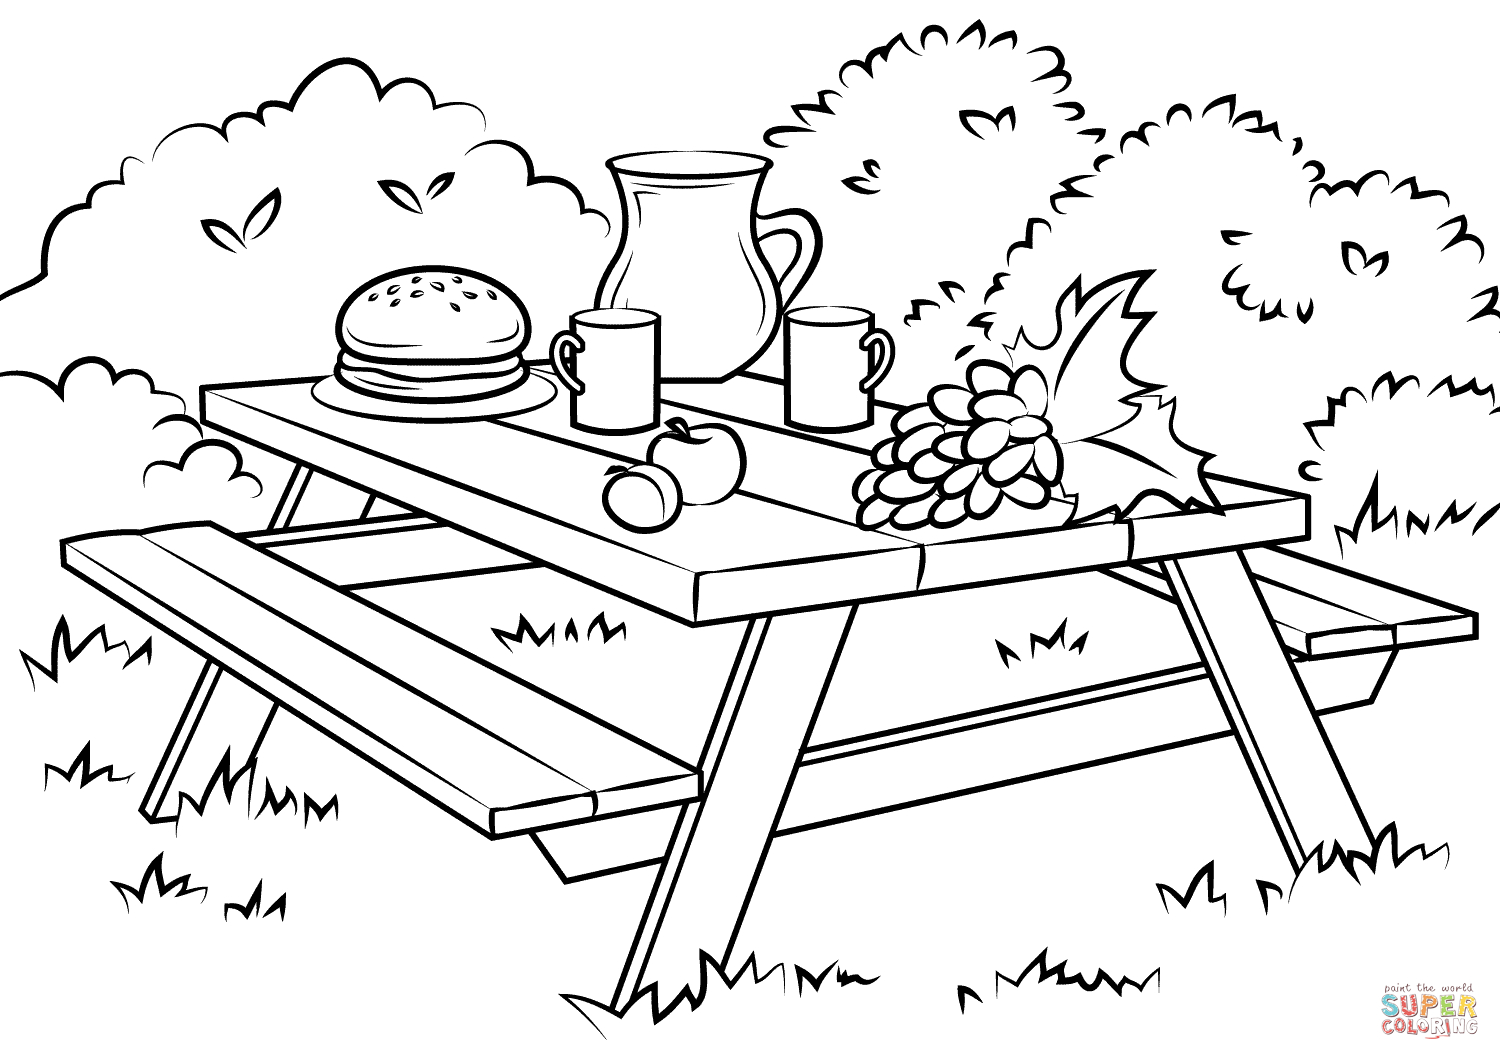 Picnic Table Coloring Page Free Printable Coloring Pages Coloring Pages Free Printable Coloring Free Printable Coloring Pages